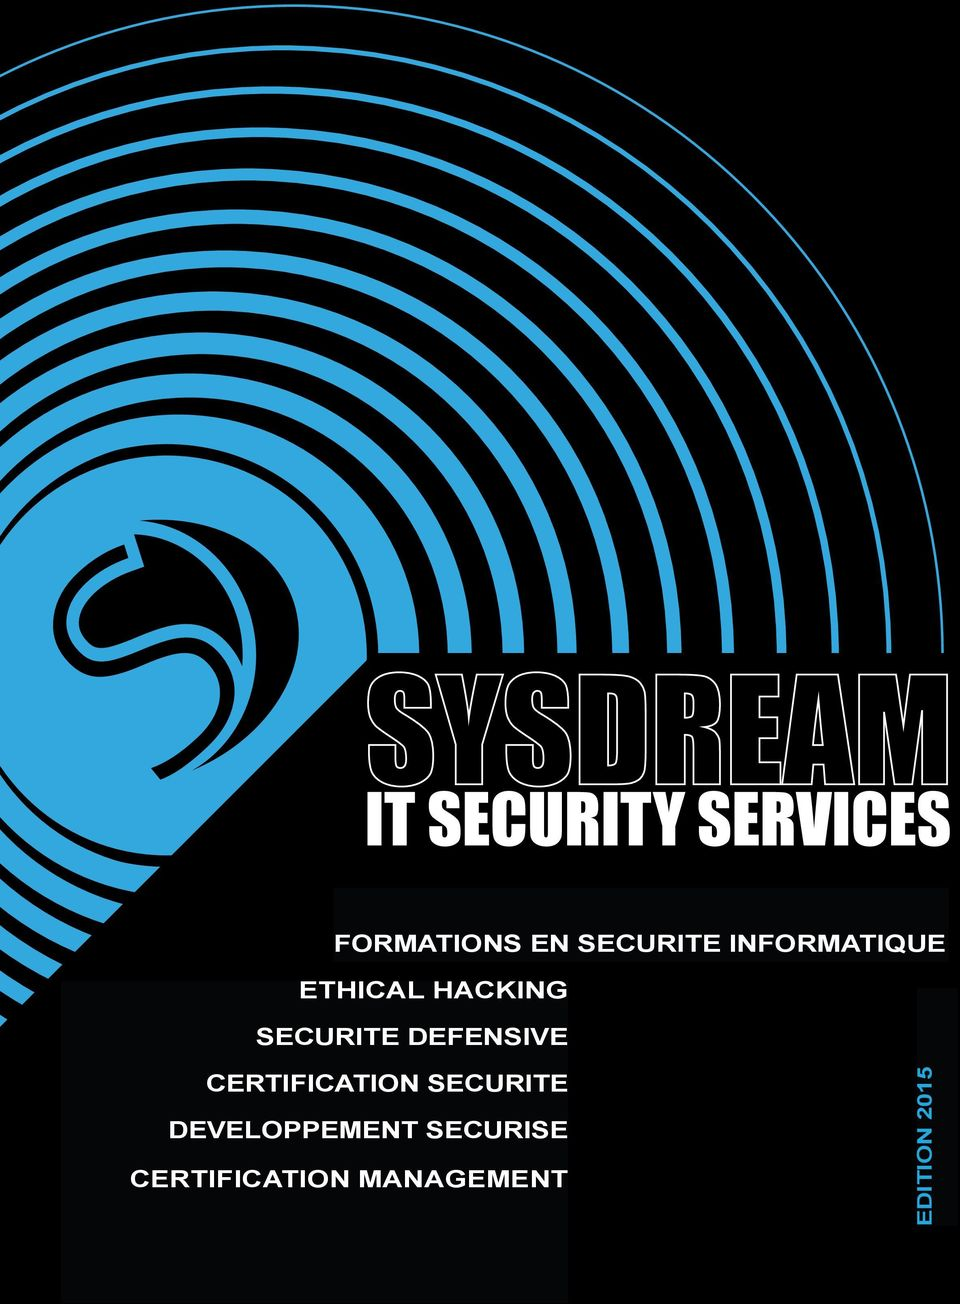 CERTIFICATION SECURITE DEVELOPPEMENT